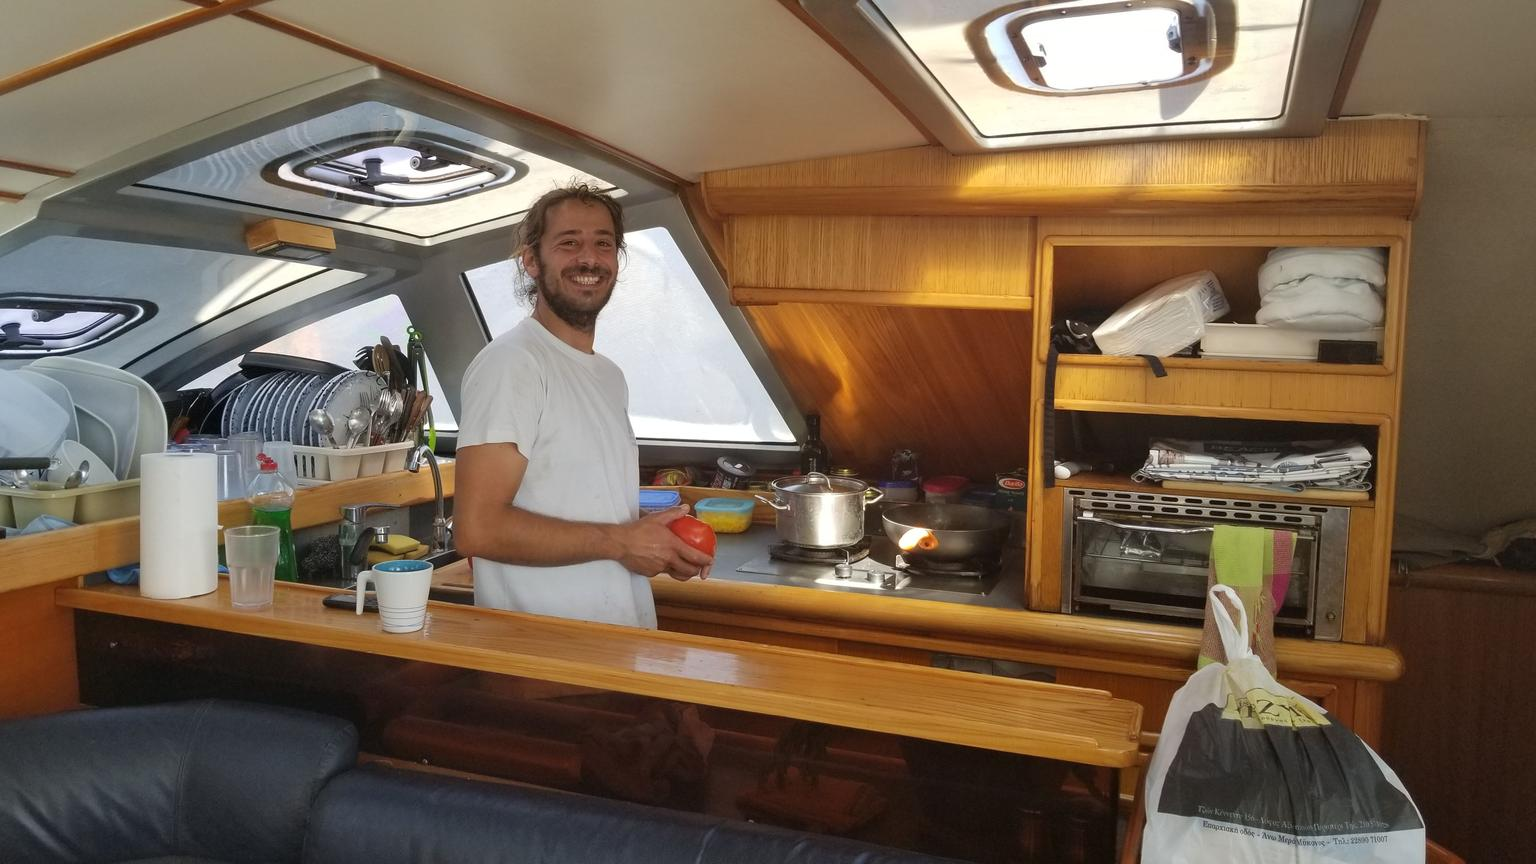 MORE PHOTOS, Mykonos Catamaran Private Sailing Cruise with Food and Drinks